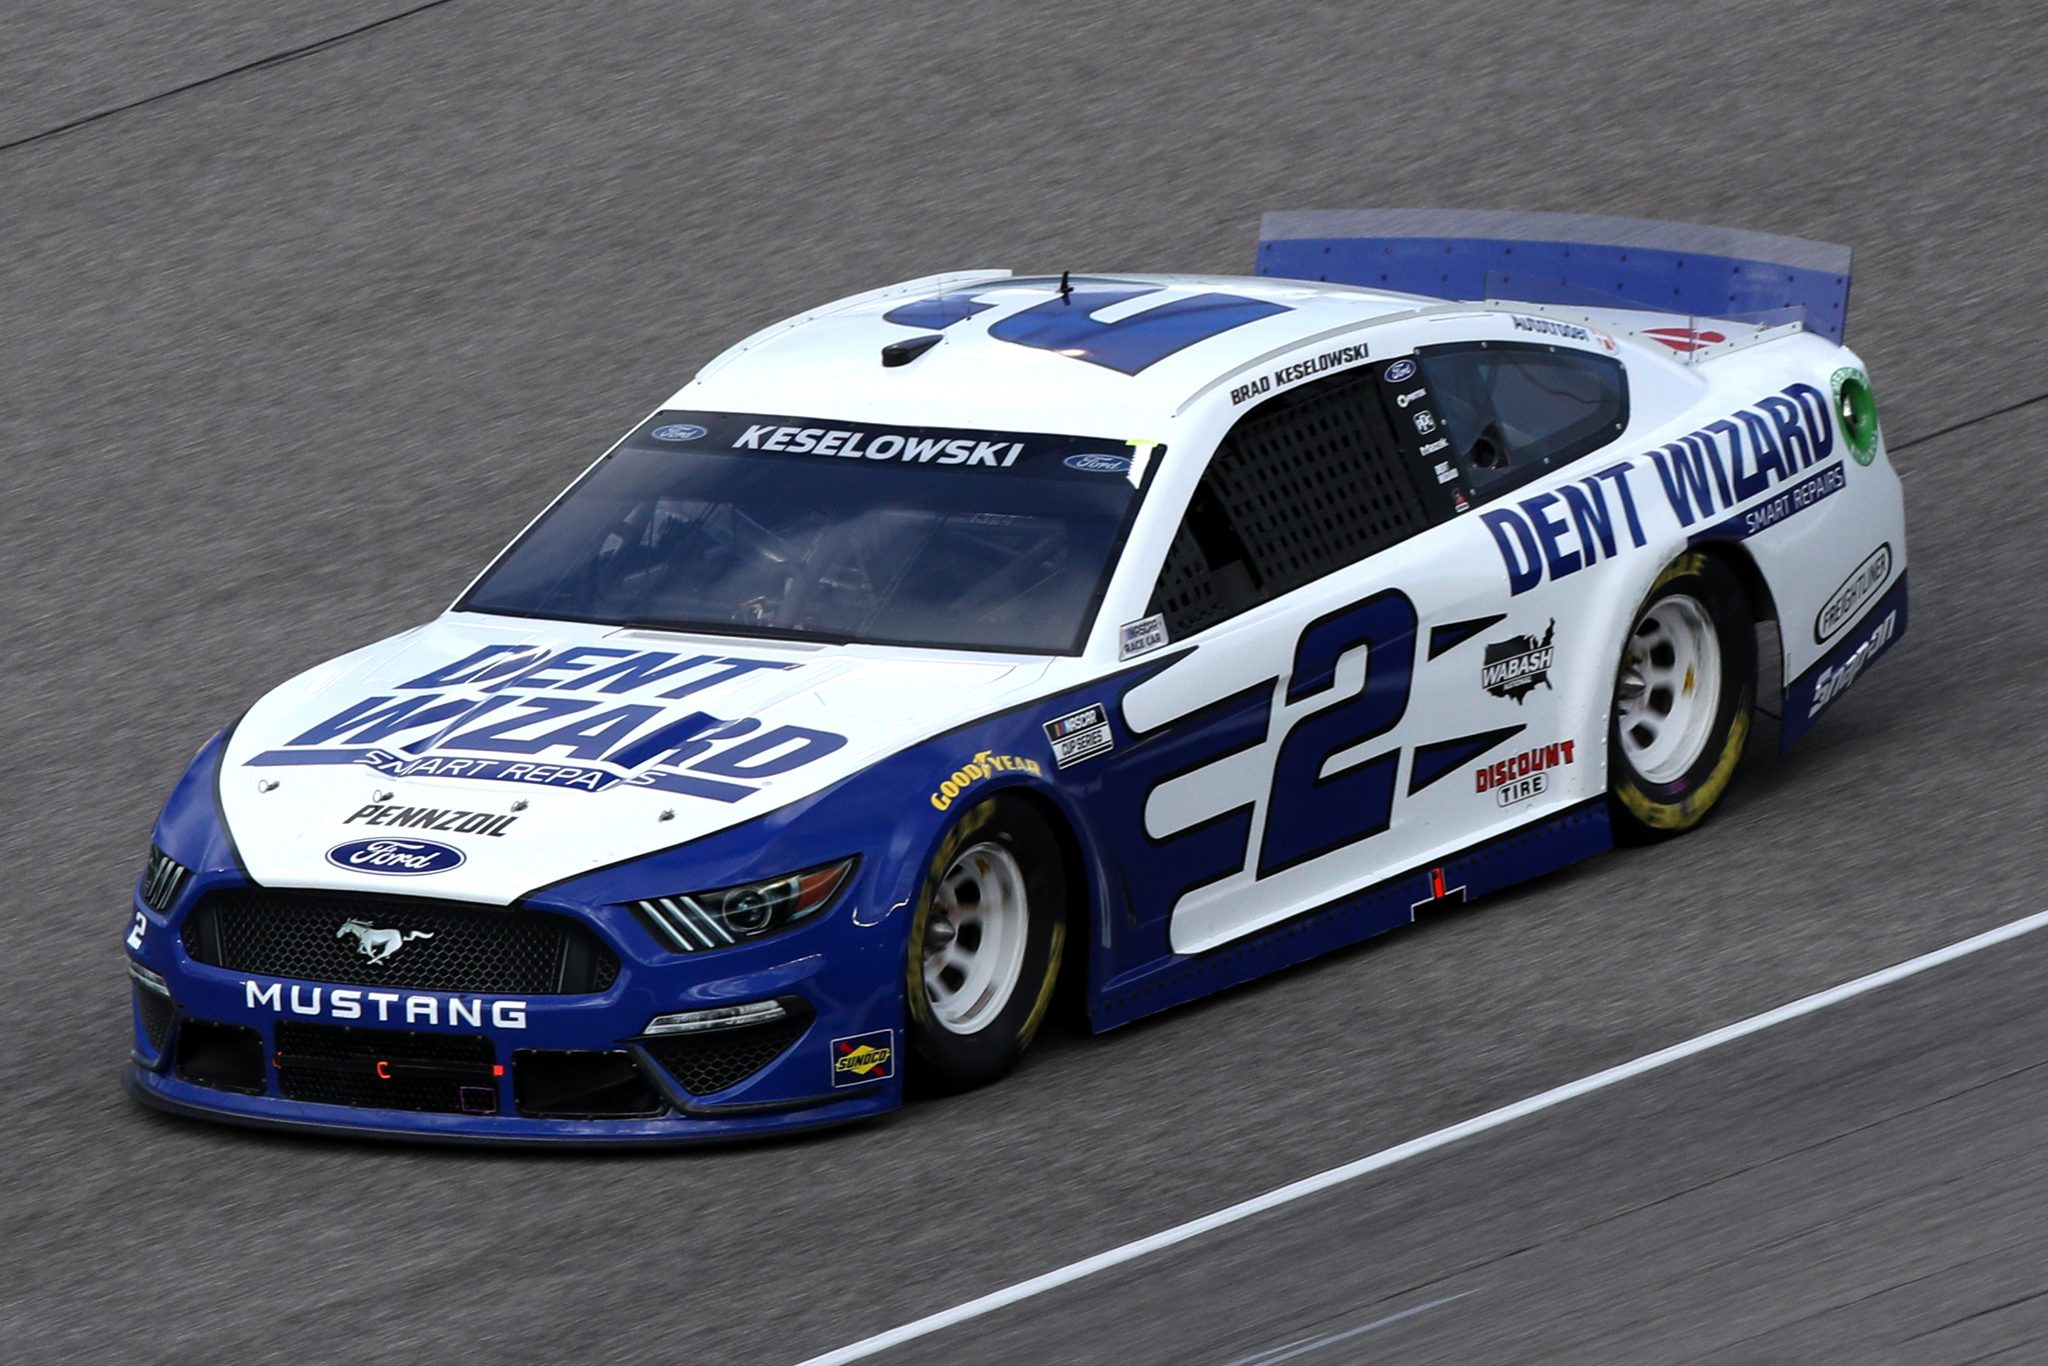 HOMESTEAD, FLORIDA - FEBRUARY 28: Brad Keselowski, driver of the #2 Dent Wizard Ford, drives during the NASCAR Cup Series Dixie Vodka 400 at Homestead-Miami Speedway on February 28, 2021 in Homestead, Florida. (Photo by Sean Gardner/Getty Images) | Getty Images